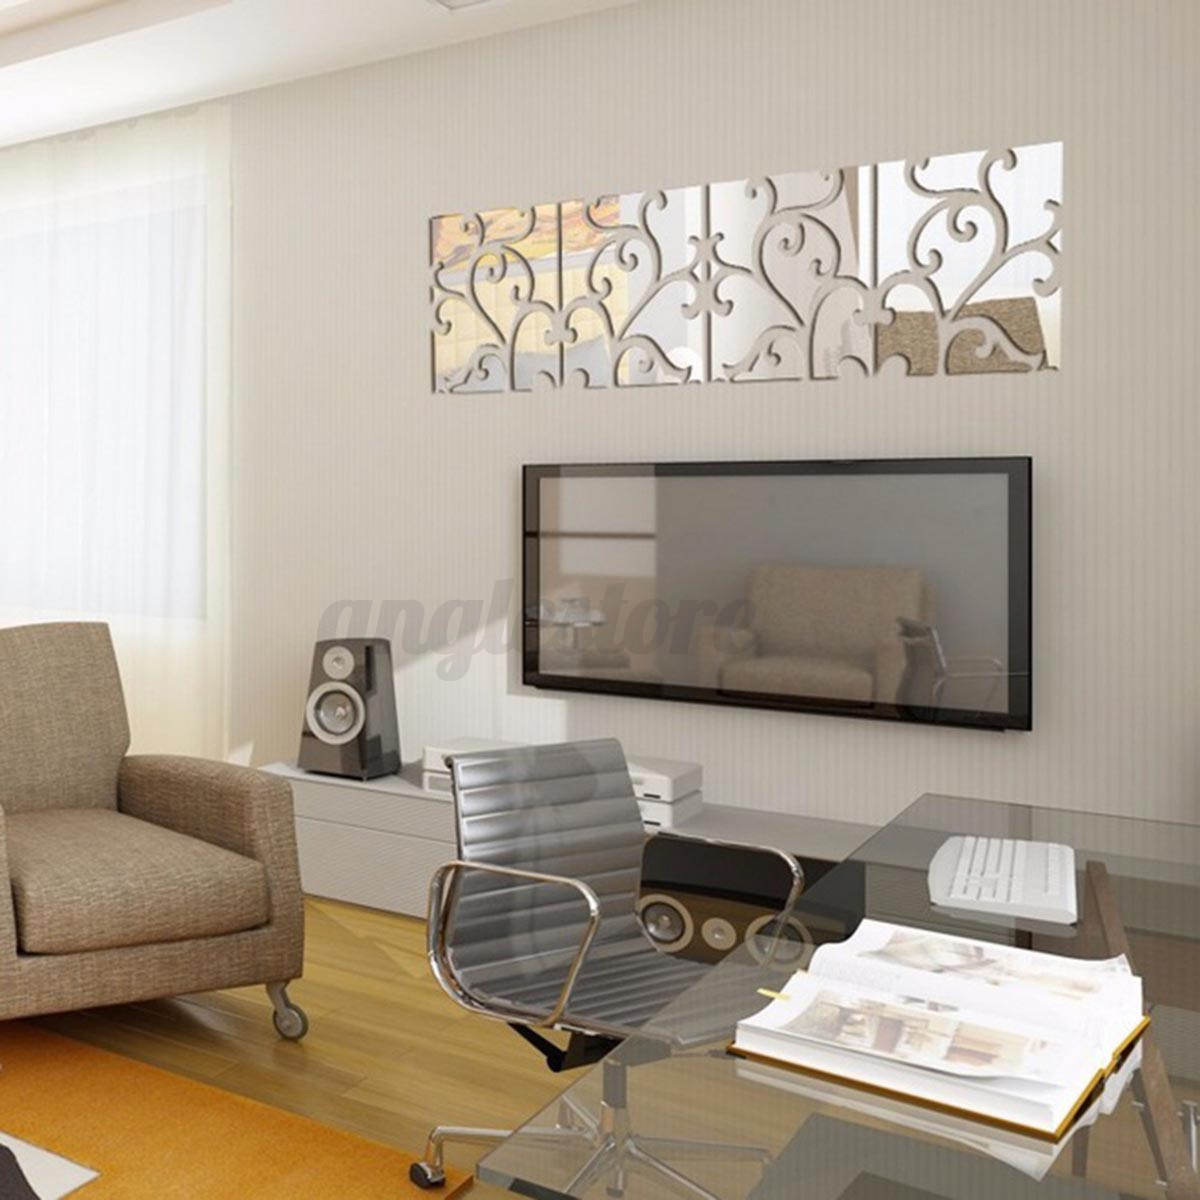 32pcs 3D Vine Mirror Wall Stickers Art Acrylic Tile Decal Home Decor Removable 5